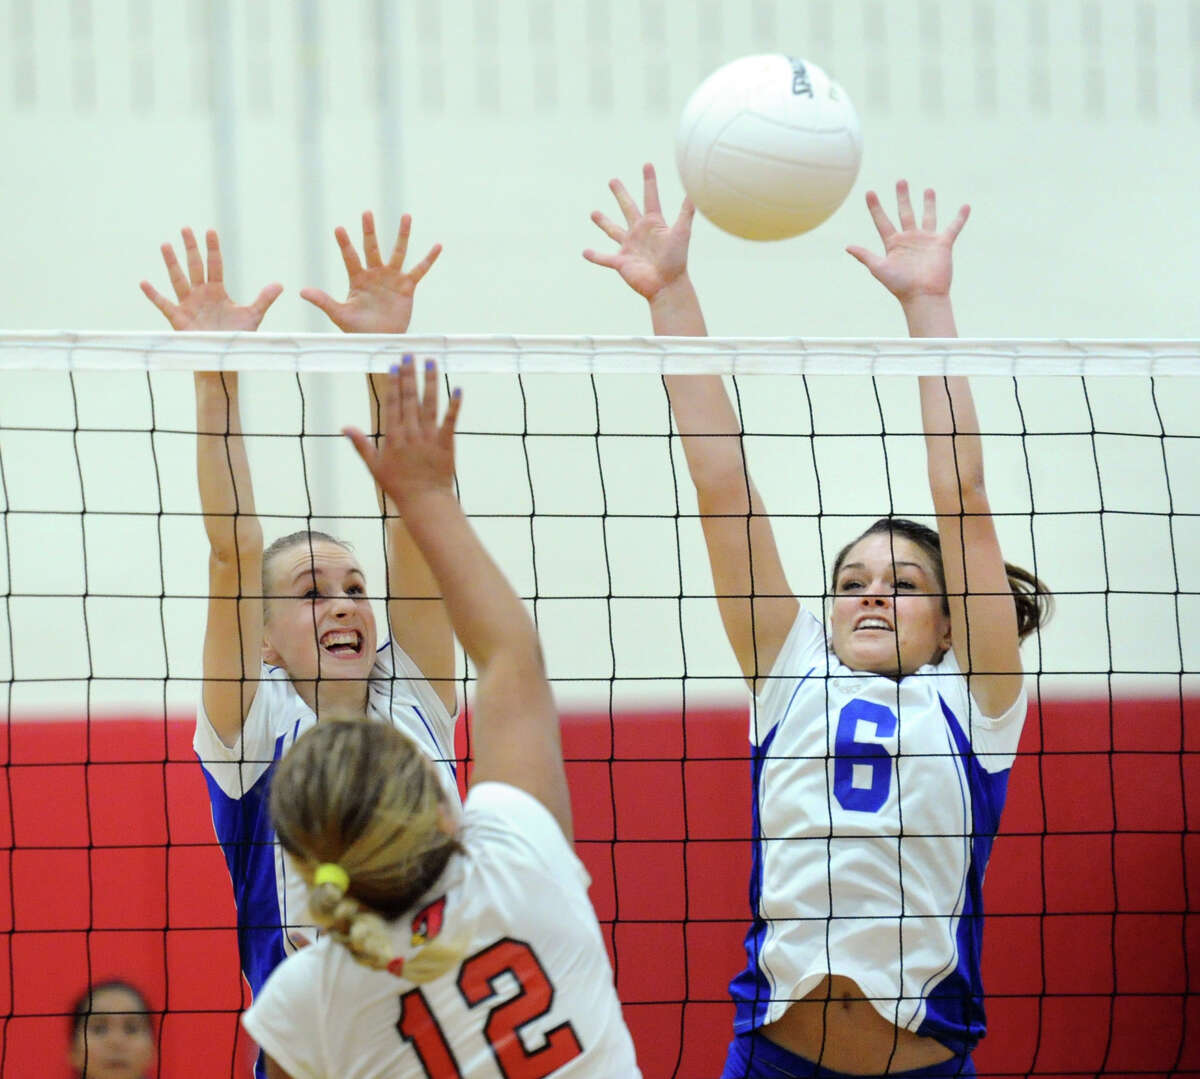 At left, Emily Milukas (#4) of Darien and teammate, Sami Huff (#6), right, block the spike of Jahaira Guerra (#12) of Greenwich, at bottom during the girls high school volleyball between Greenwich High School and Darien High School at Greenwich, Tuesday, Oct. 14, 2014. Darien won the match over Greenwich, 3-0.